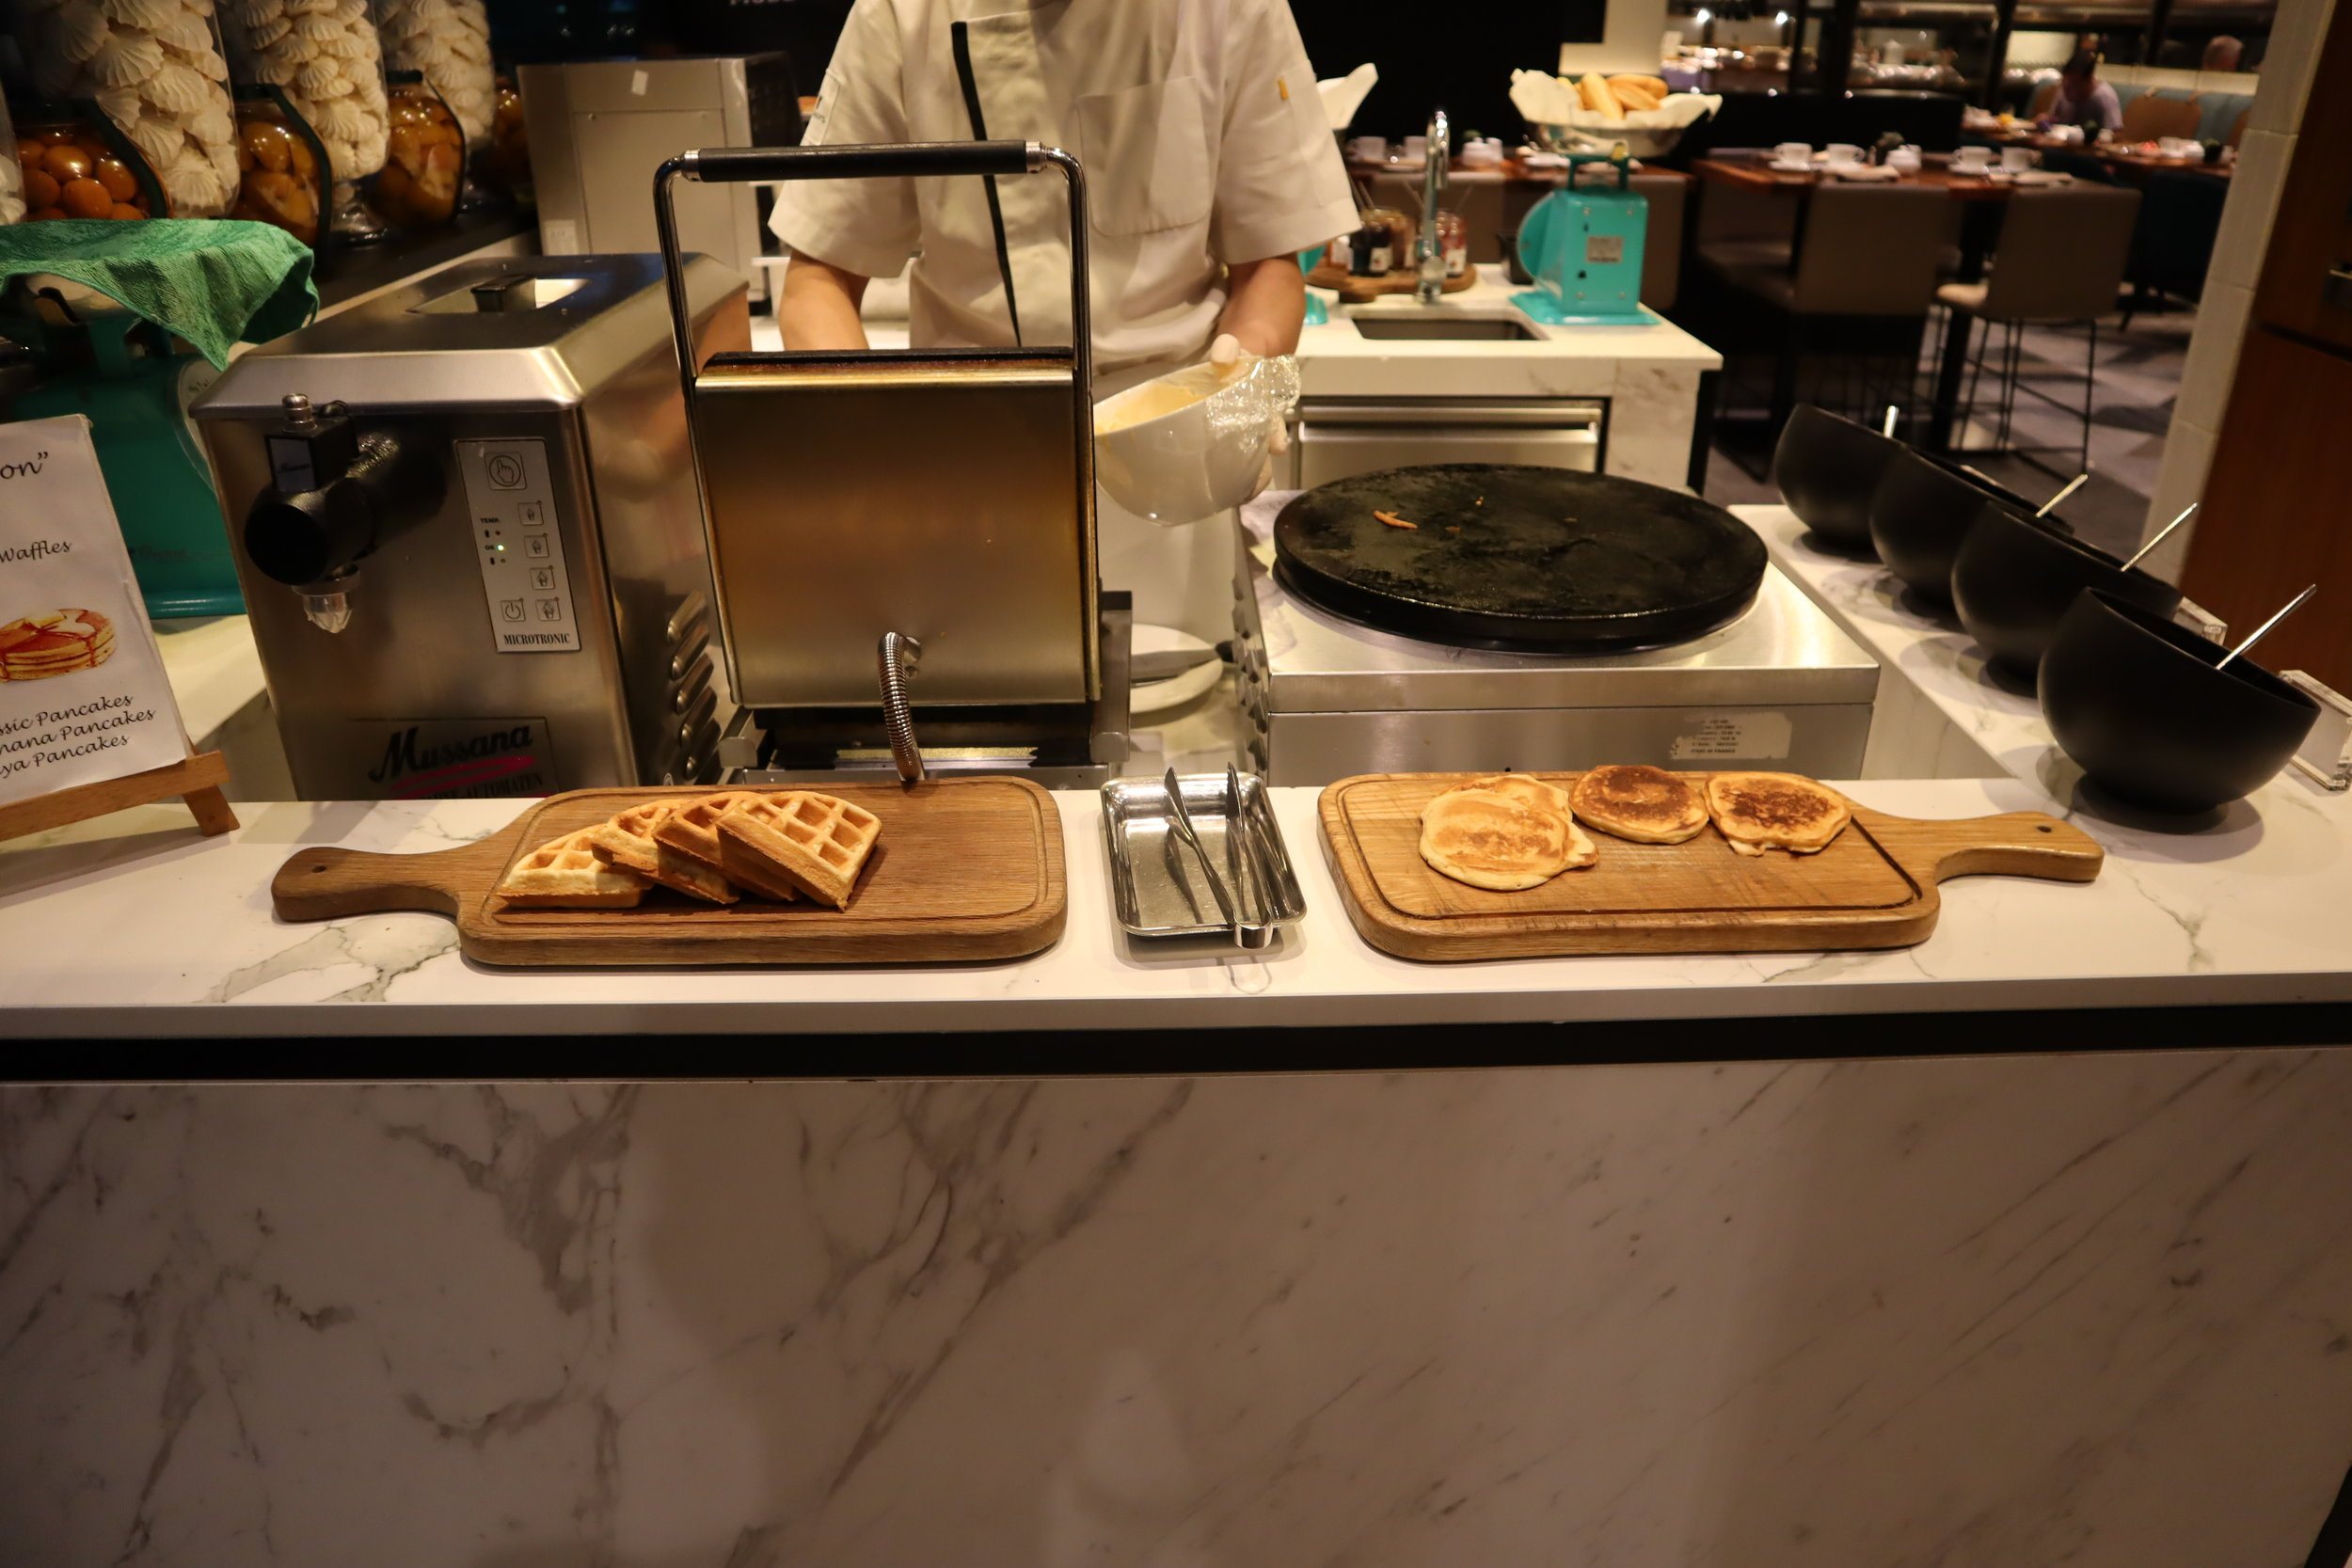 JW Marriott Singapore South Beach – Beach Road Kitchen pancake station